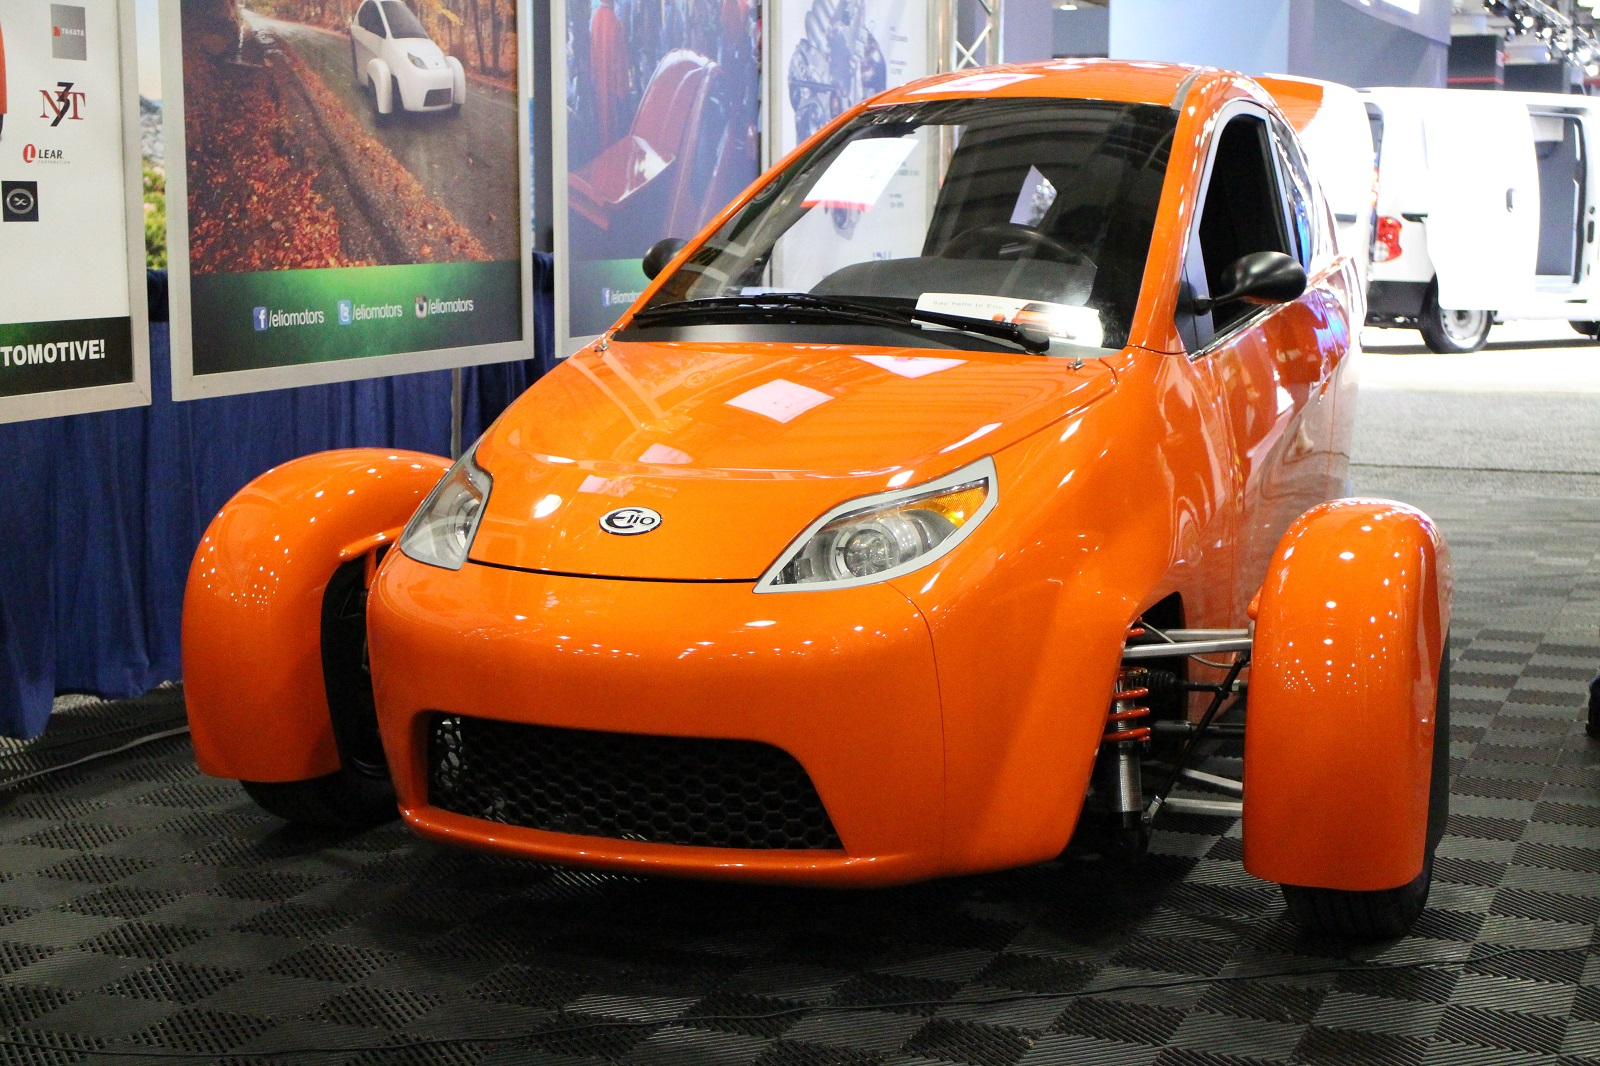 Elio Car Review